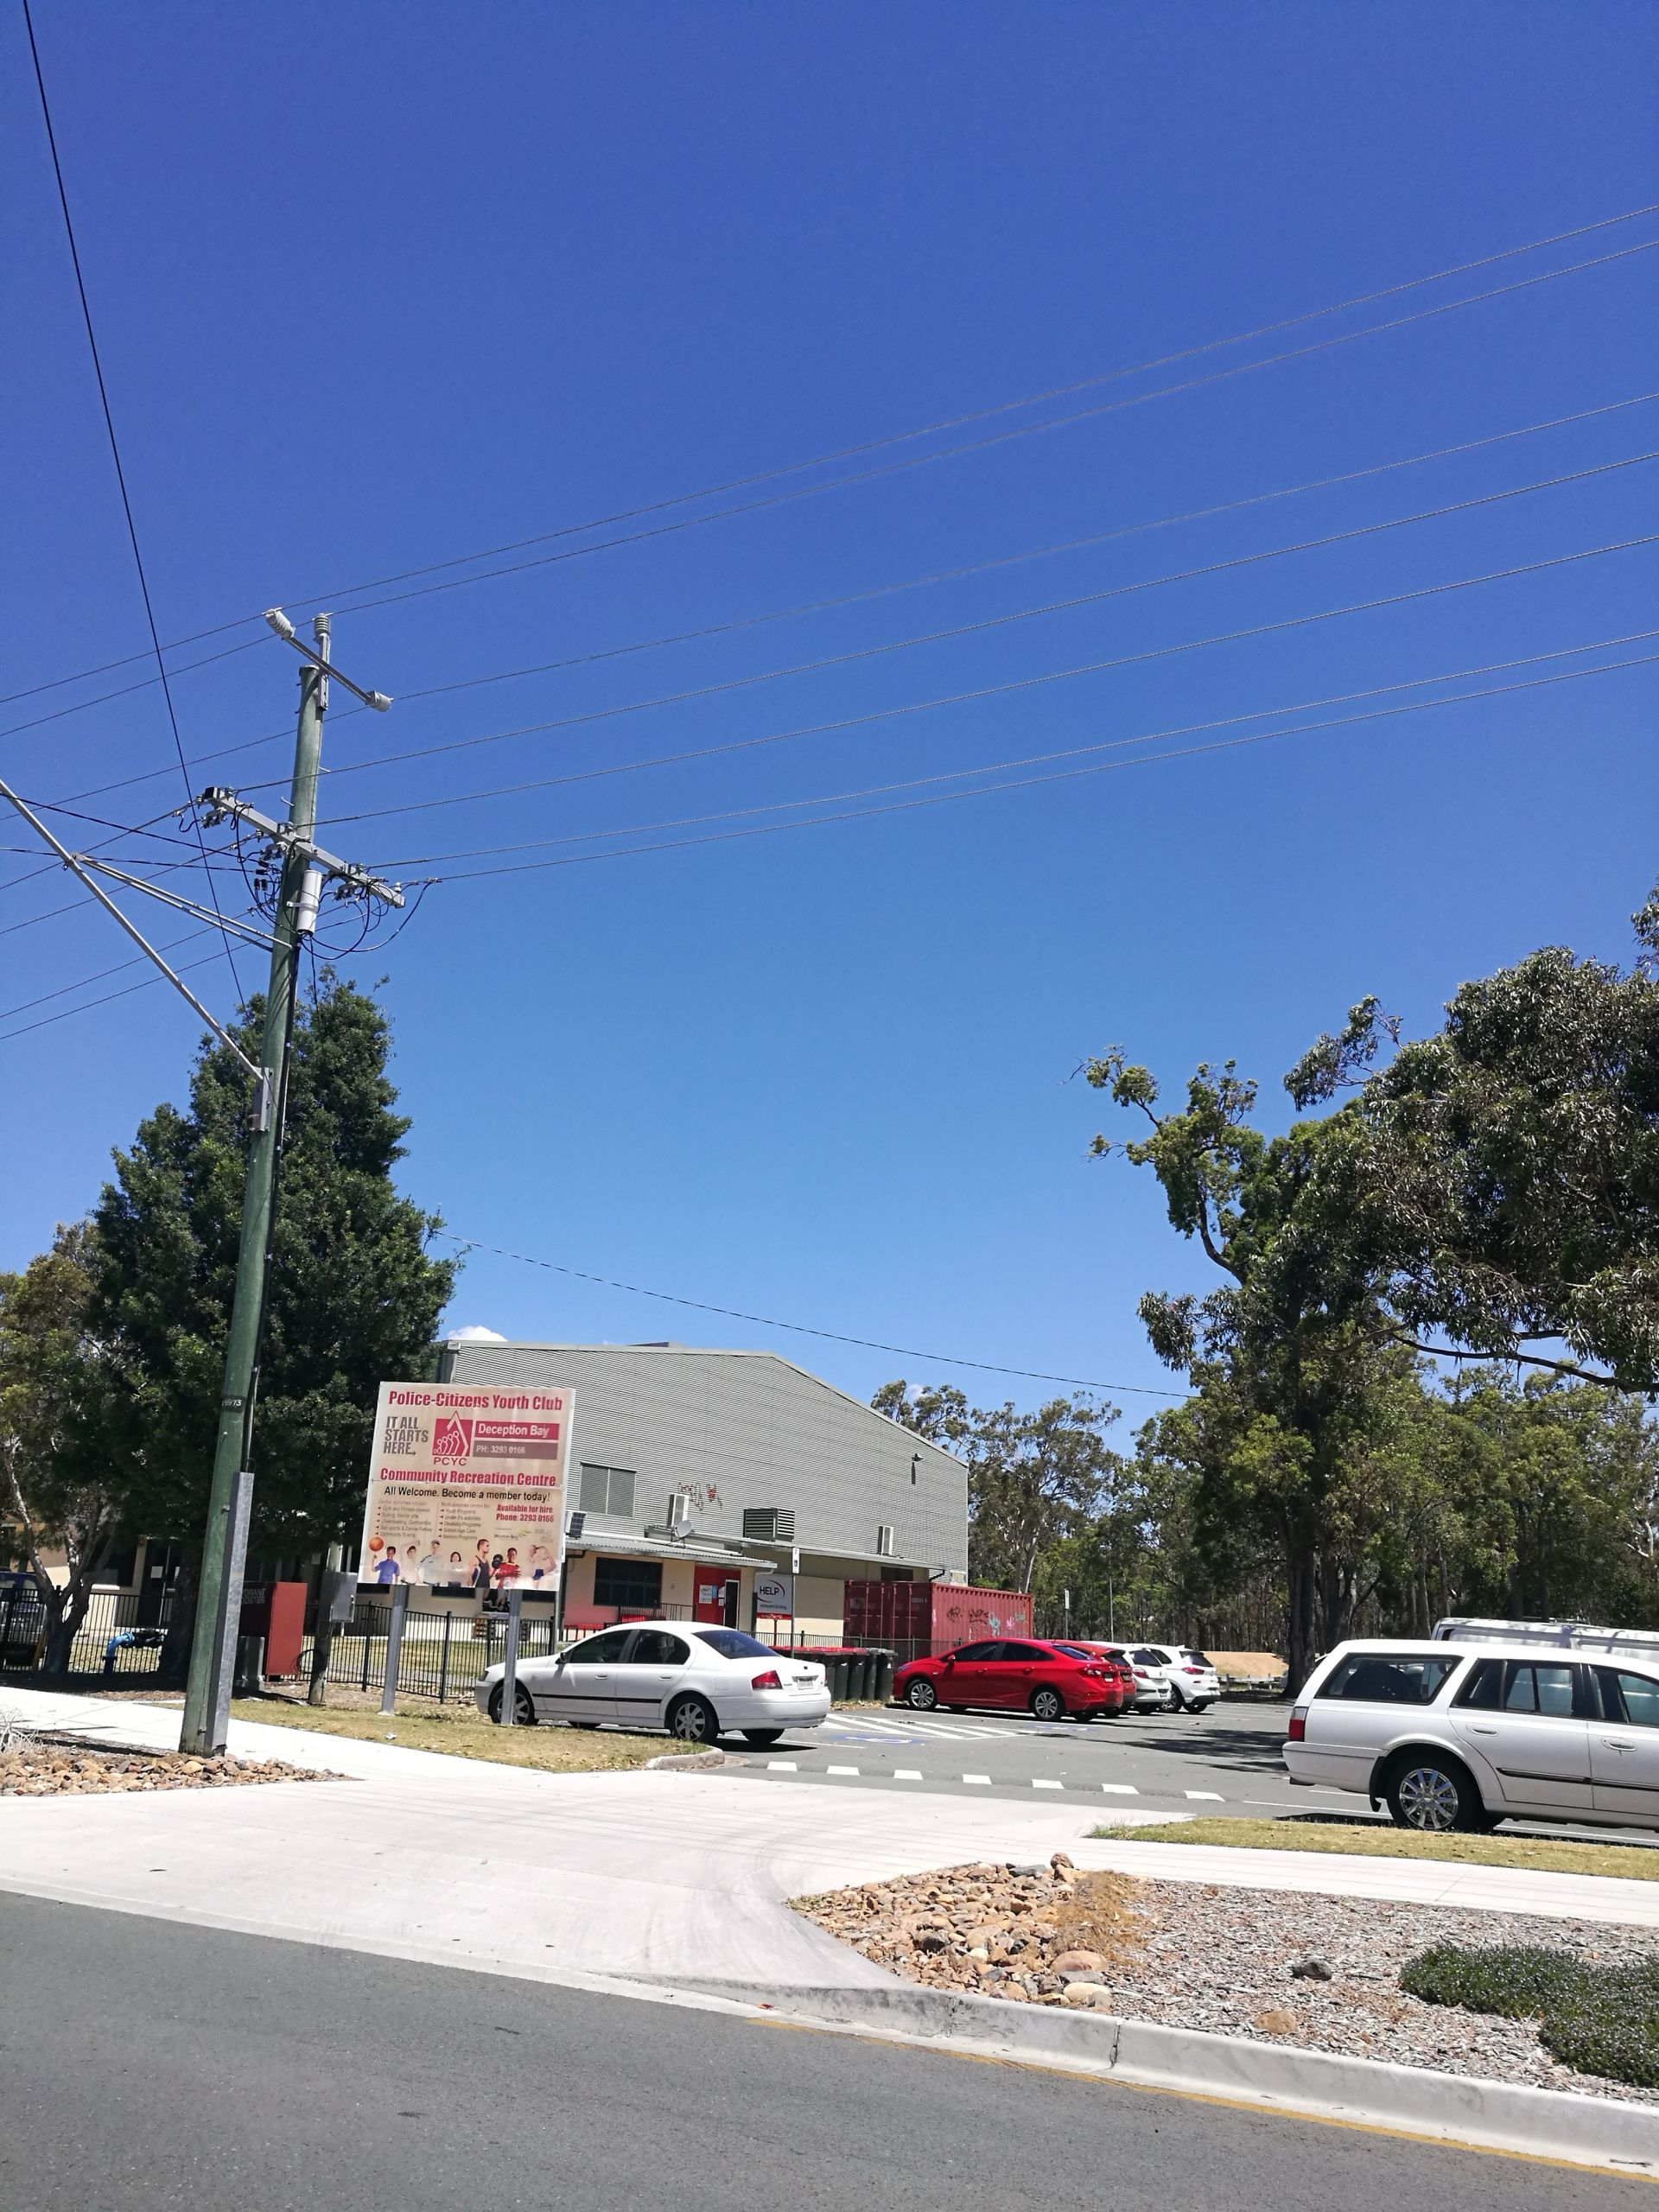 FANTASTIC DEVELOPMENT PROPERTY FOR CHILDCARE CENTRE BUILDING AND BUSINESS